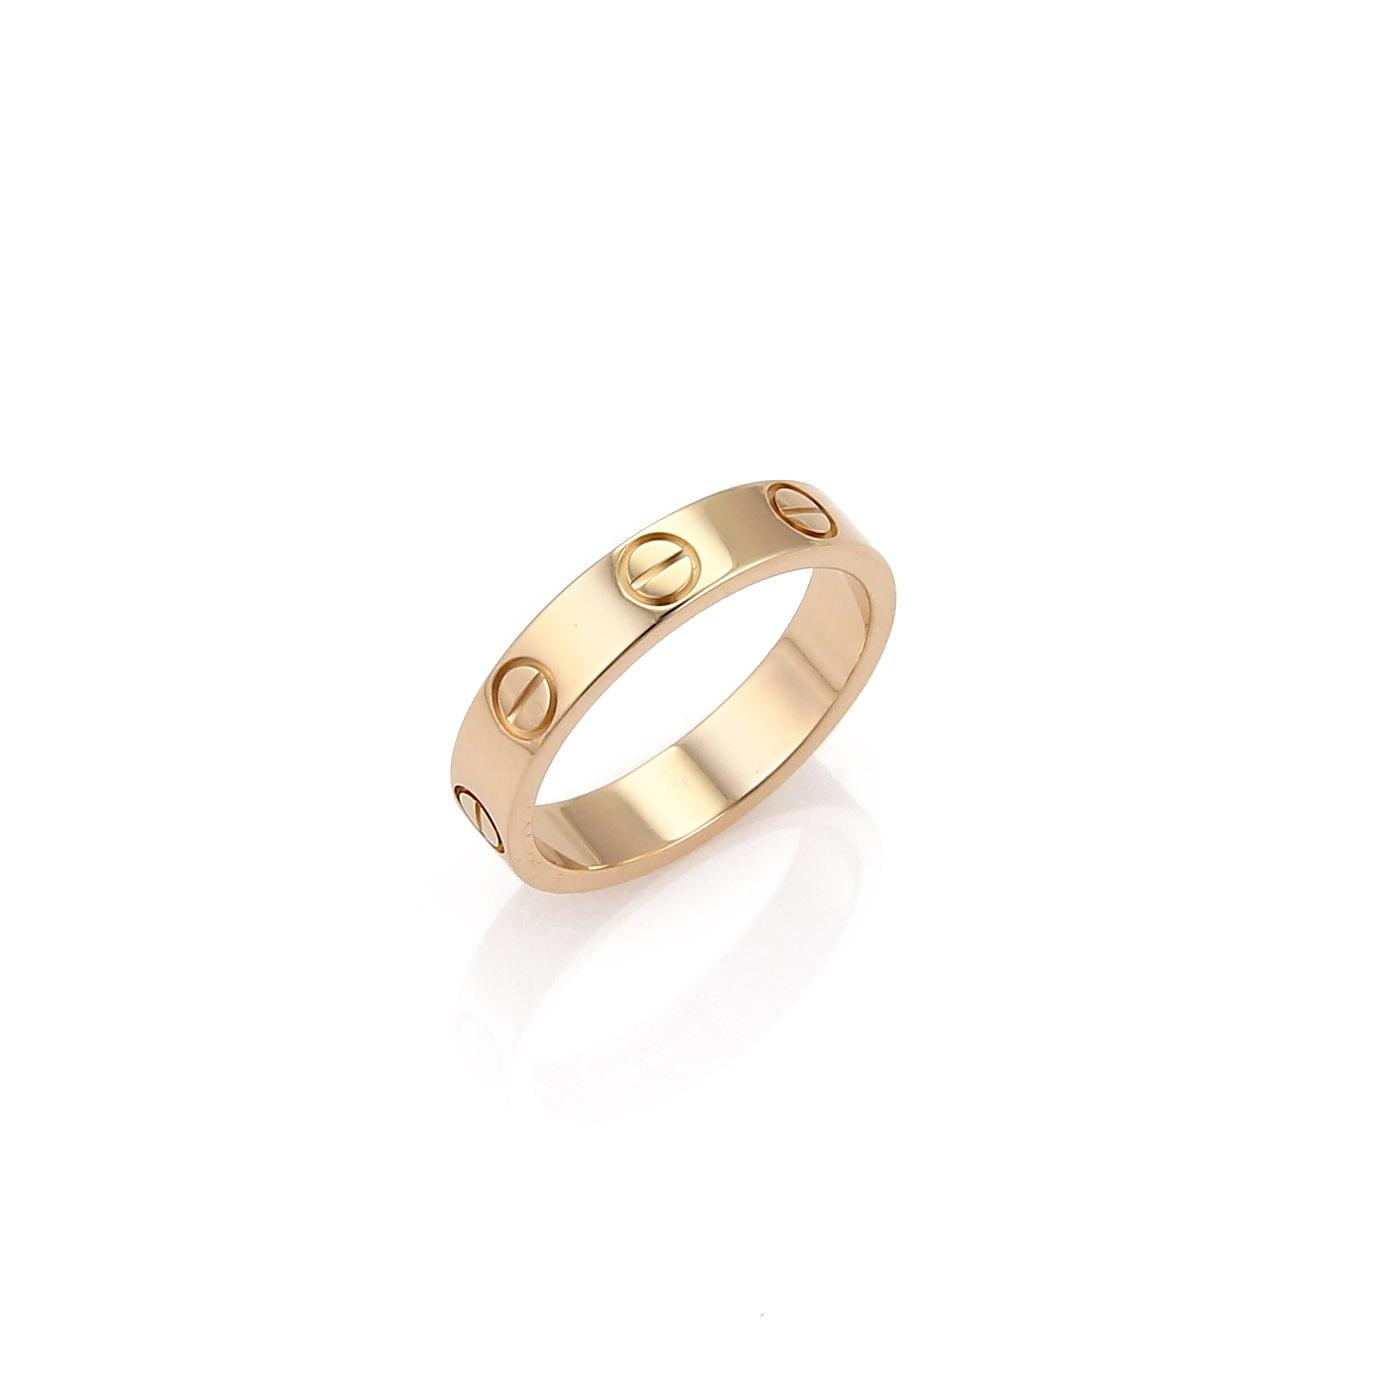 Cartier Rings Up to 70 off at Tradesy